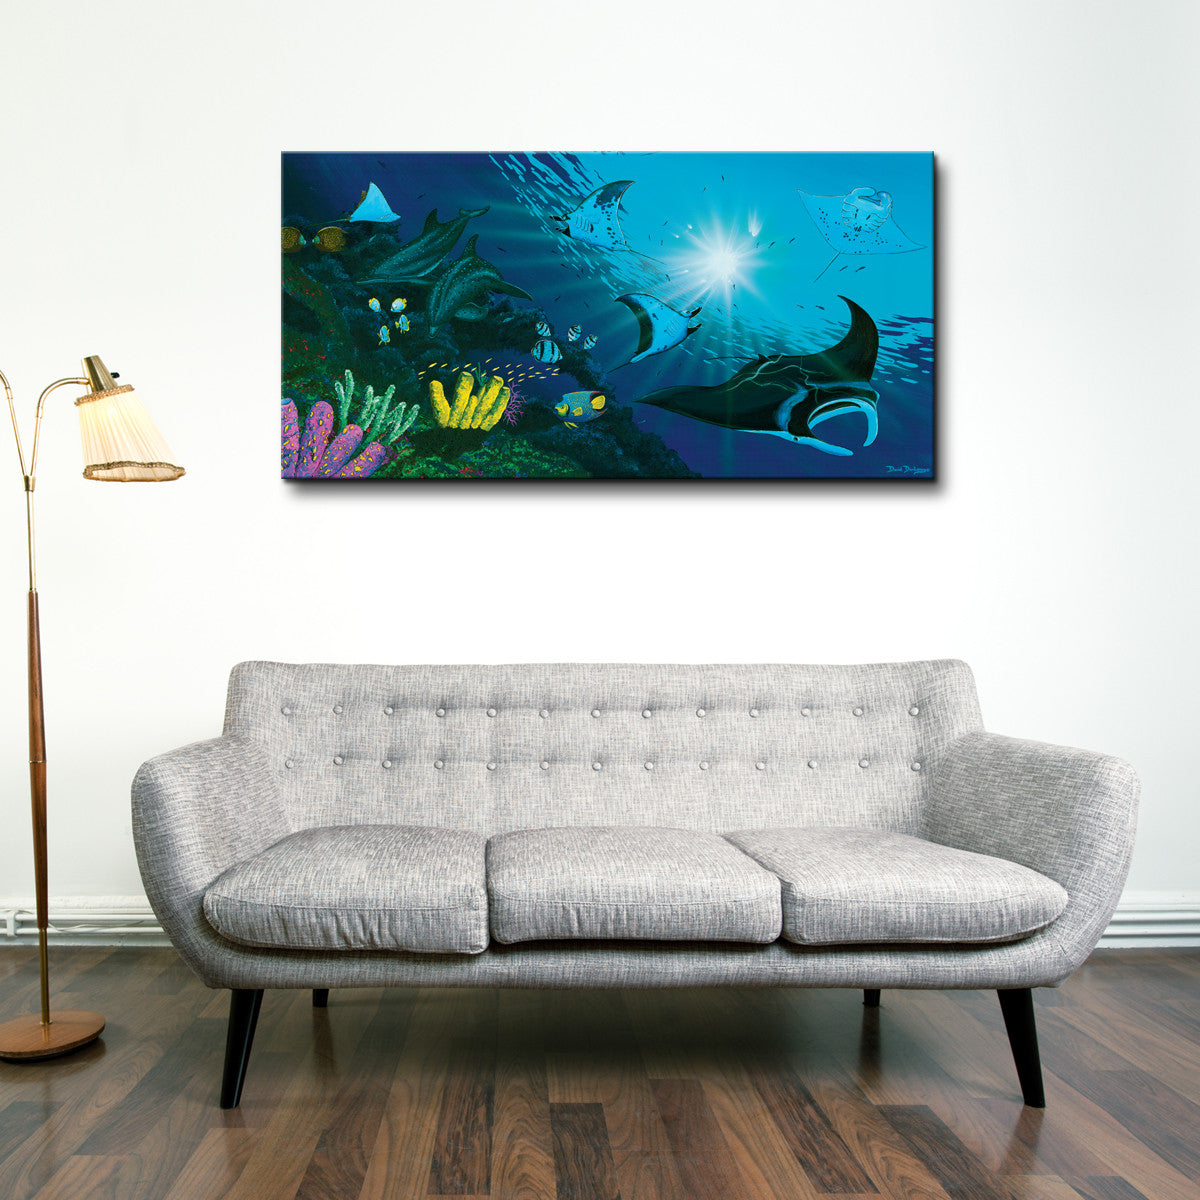 David Dunleavy 'Manta Rays' Canvas Wall Art